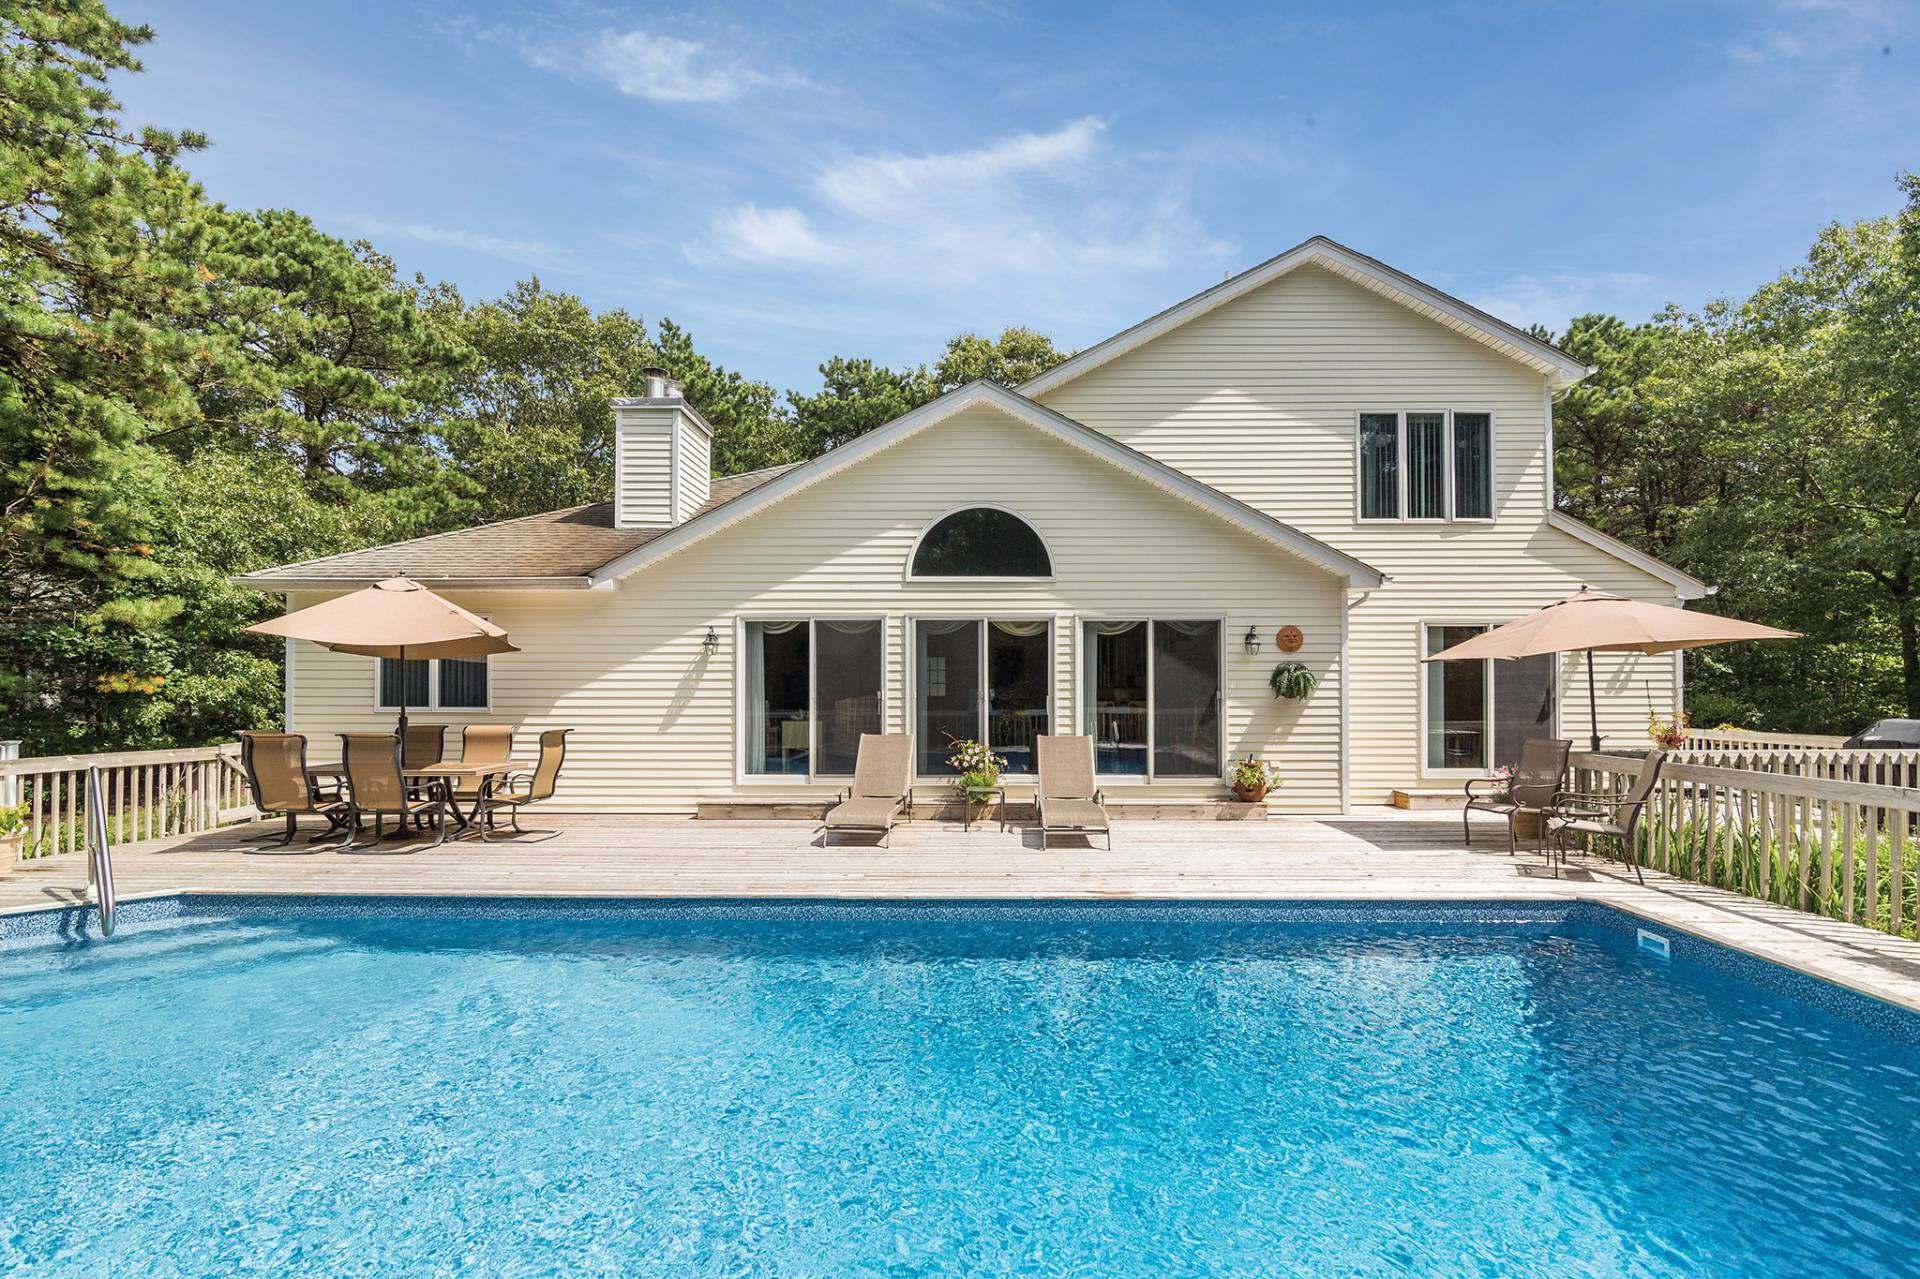 Single Family Home for Sale at Postmodern Perfection 58 Lakeside Lane, Westhampton, New York